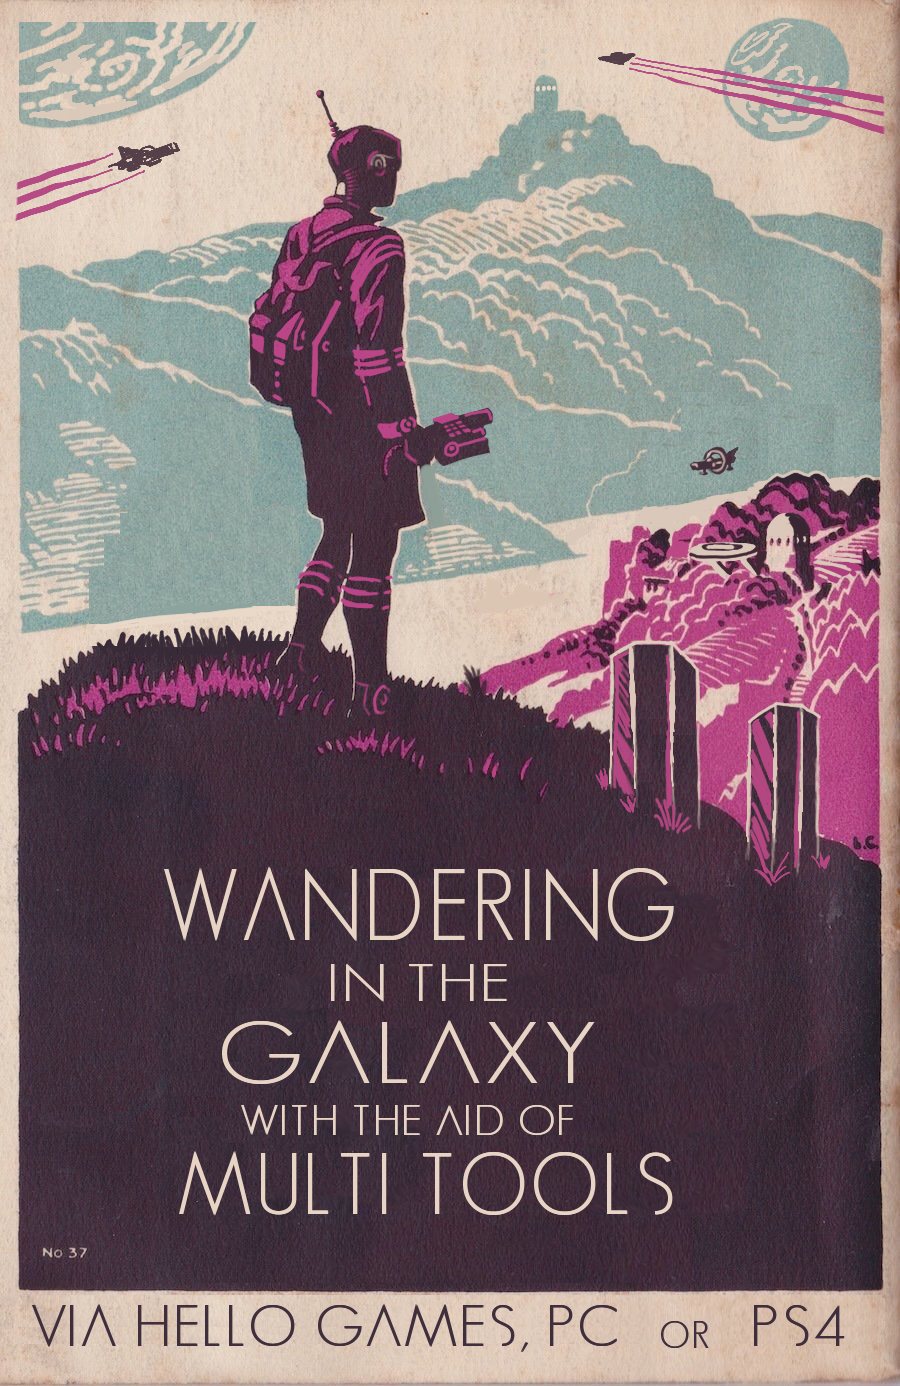 NMS Poster JDR